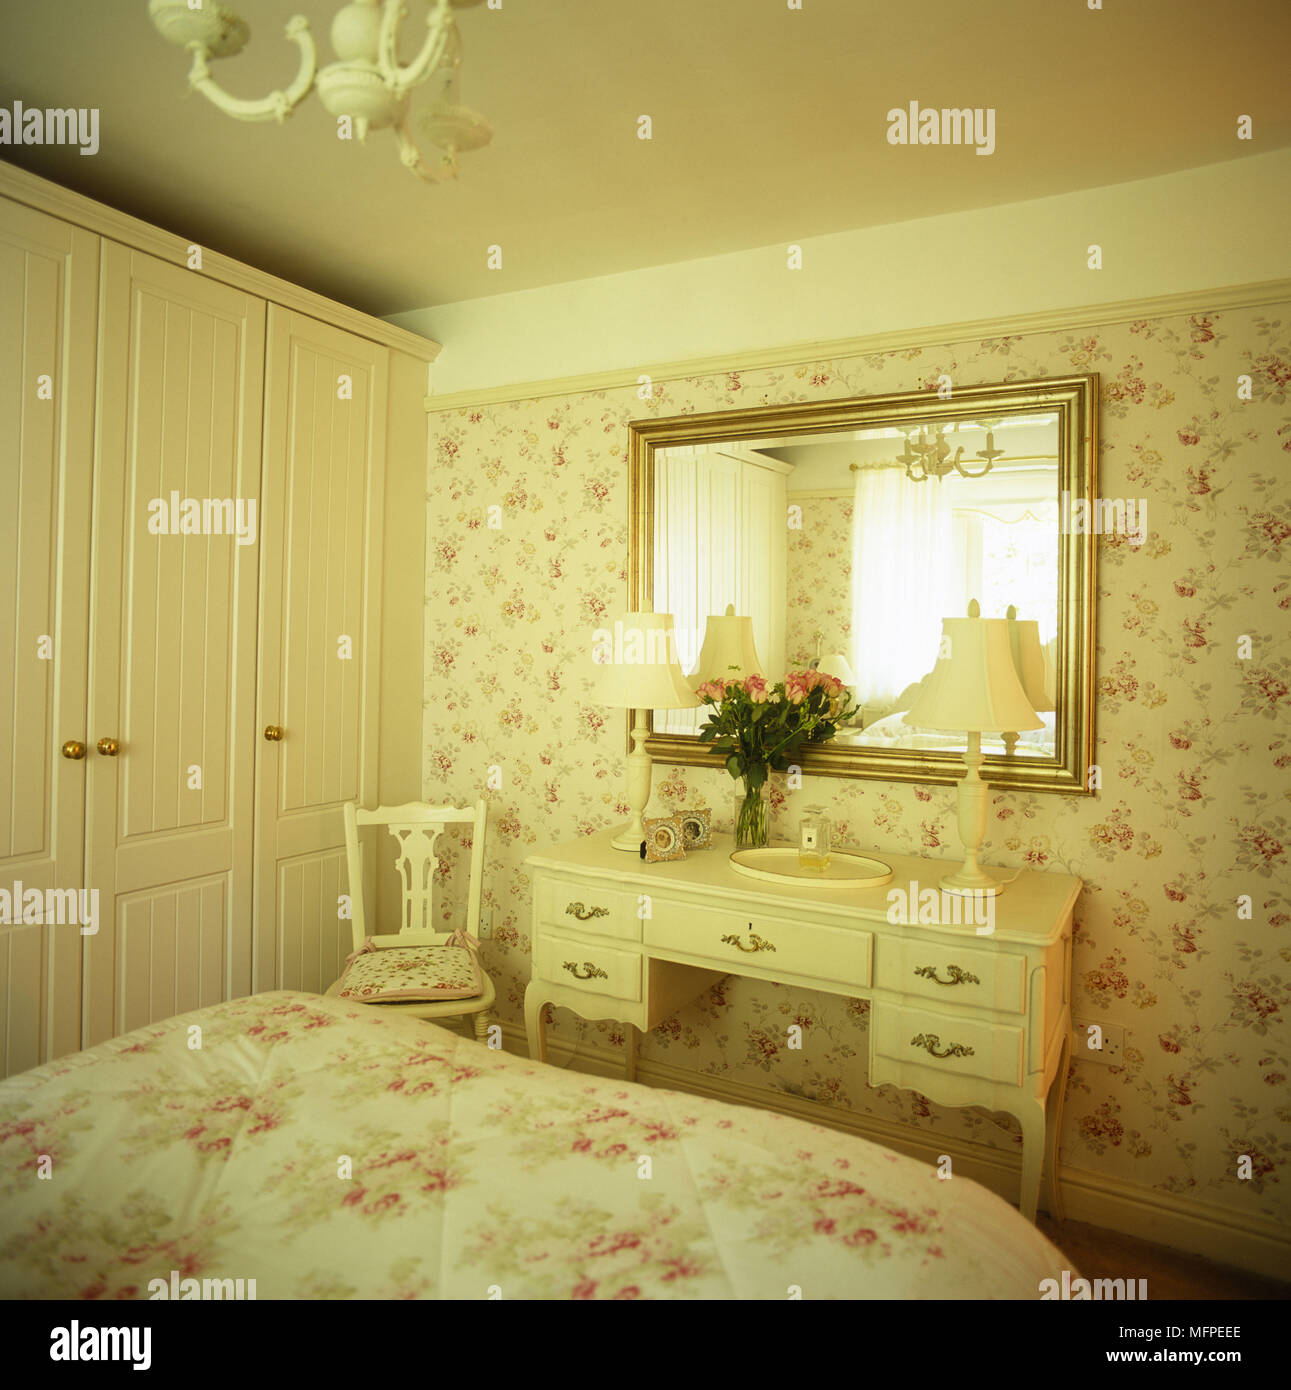 Floral decor and a large inbuilt wardrobe next to a mirror above a ...